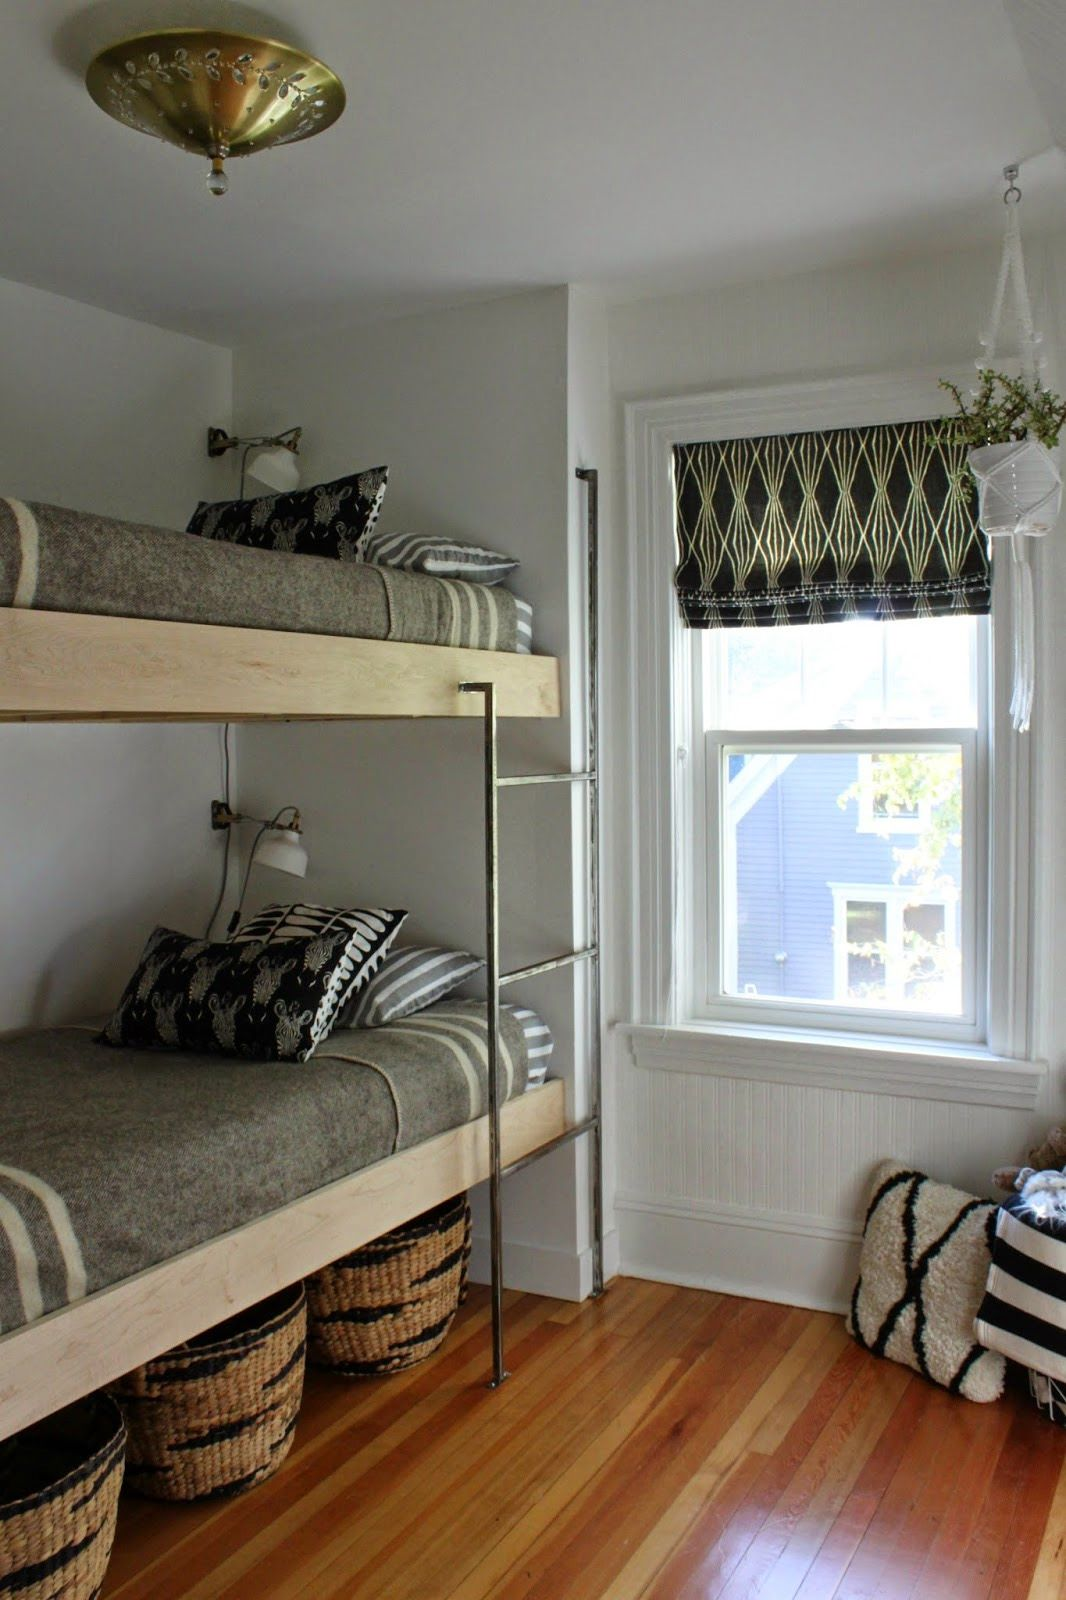 Bunk Bed Ideas For Small Rooms Pin By U Relish Farm On Slumber Beds For Small Rooms